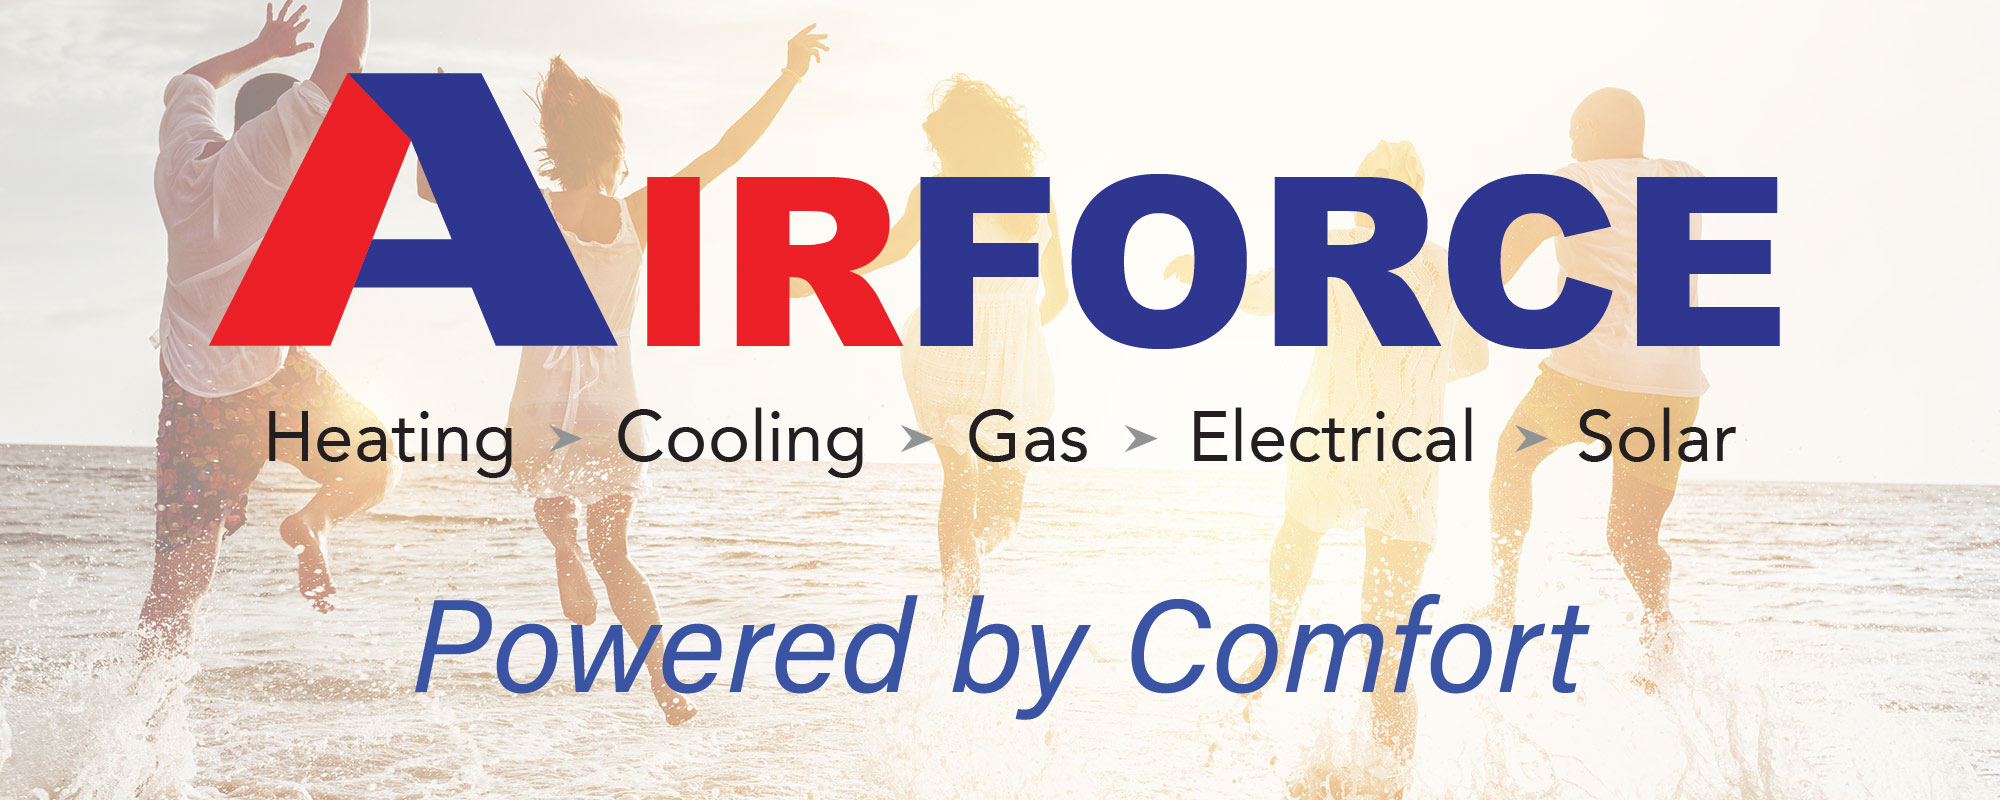 Airforce HVAC: Heating & Cooling, AC, Natural Gas, Electrical, Solar